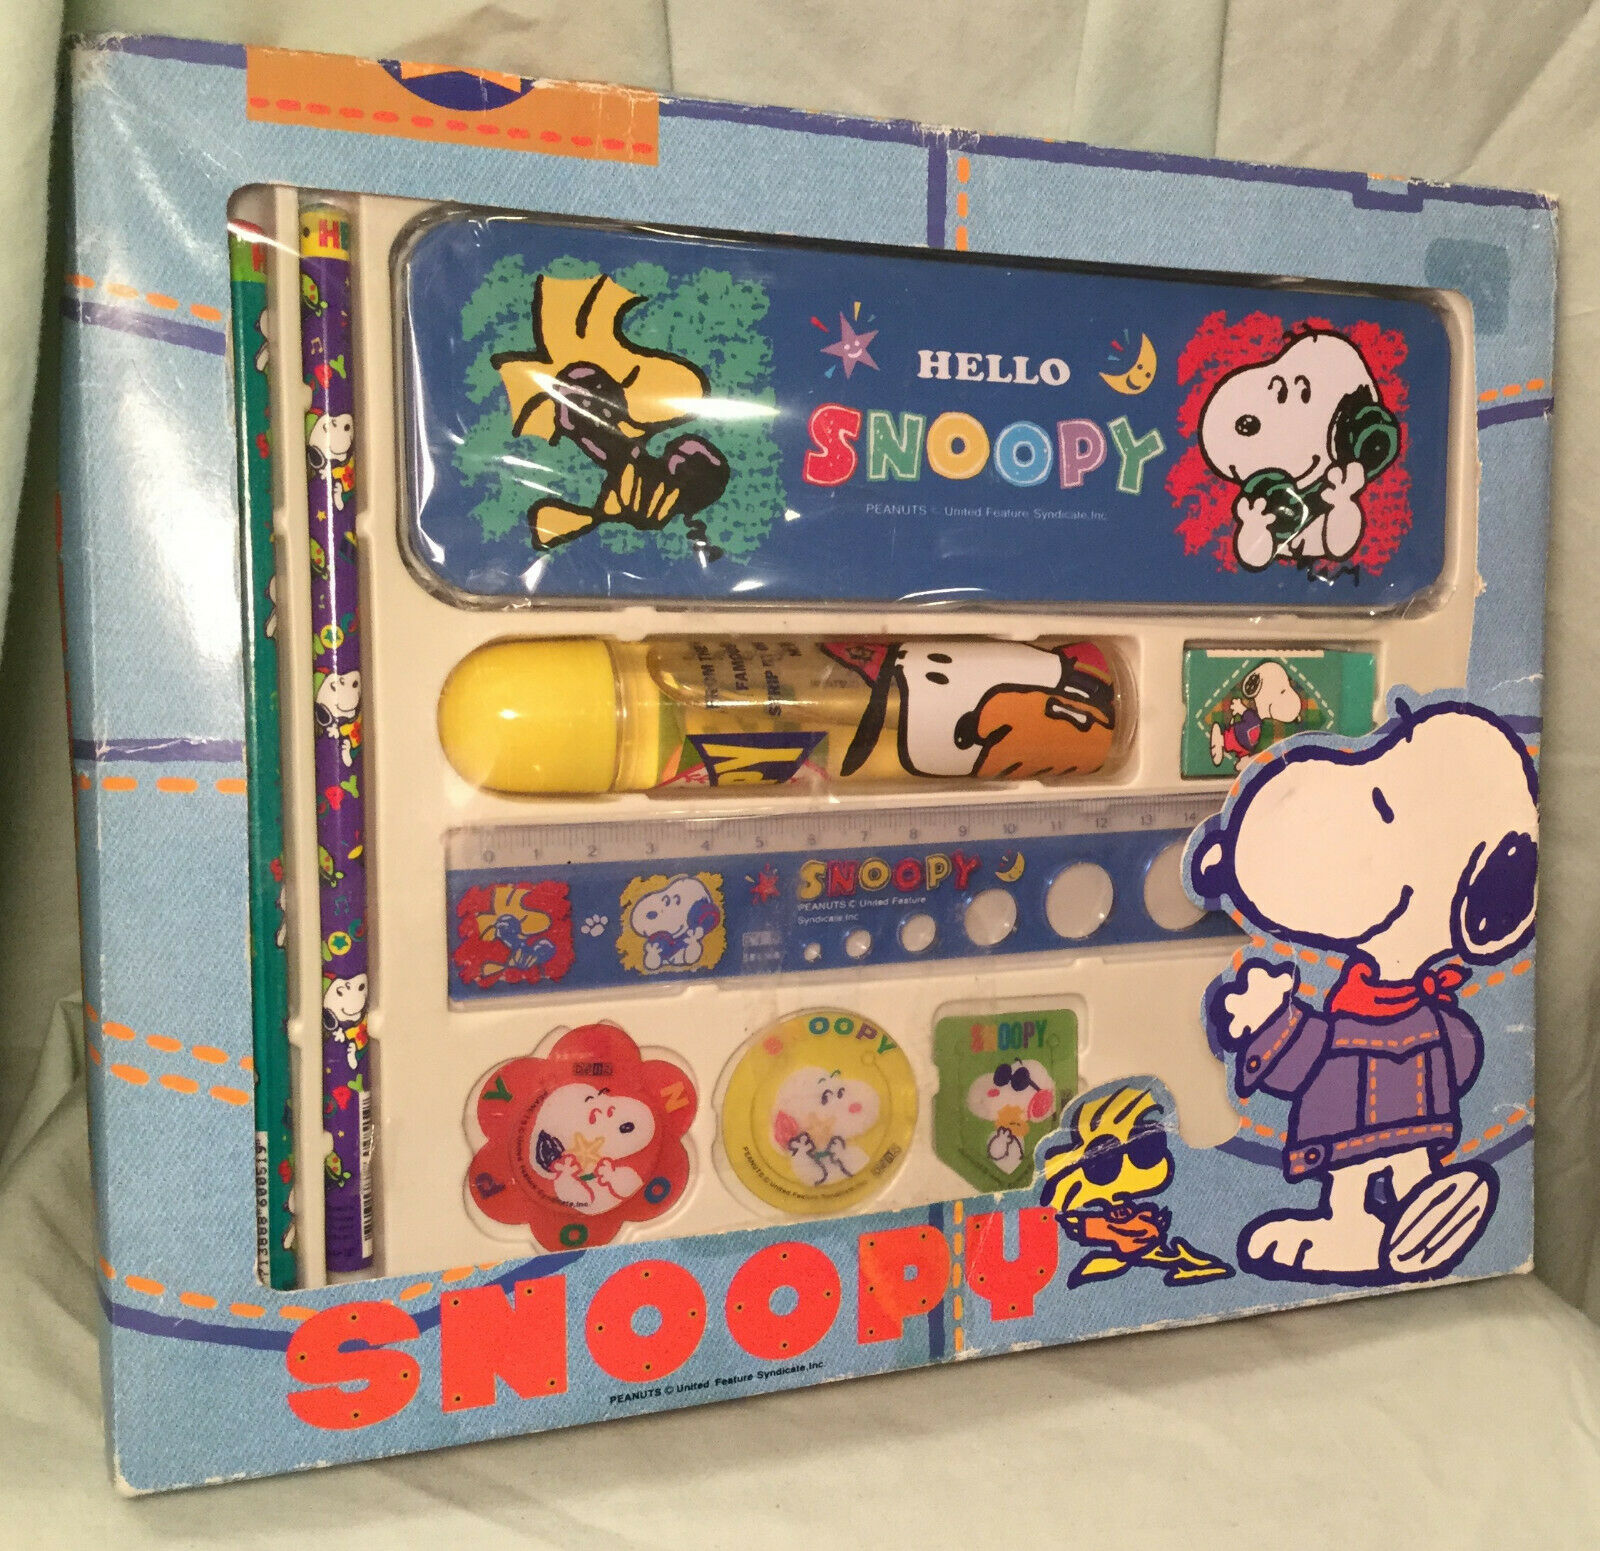 PEANUTS SNOOPY Eraser Roller Case Red Purple With scent Cute Rare